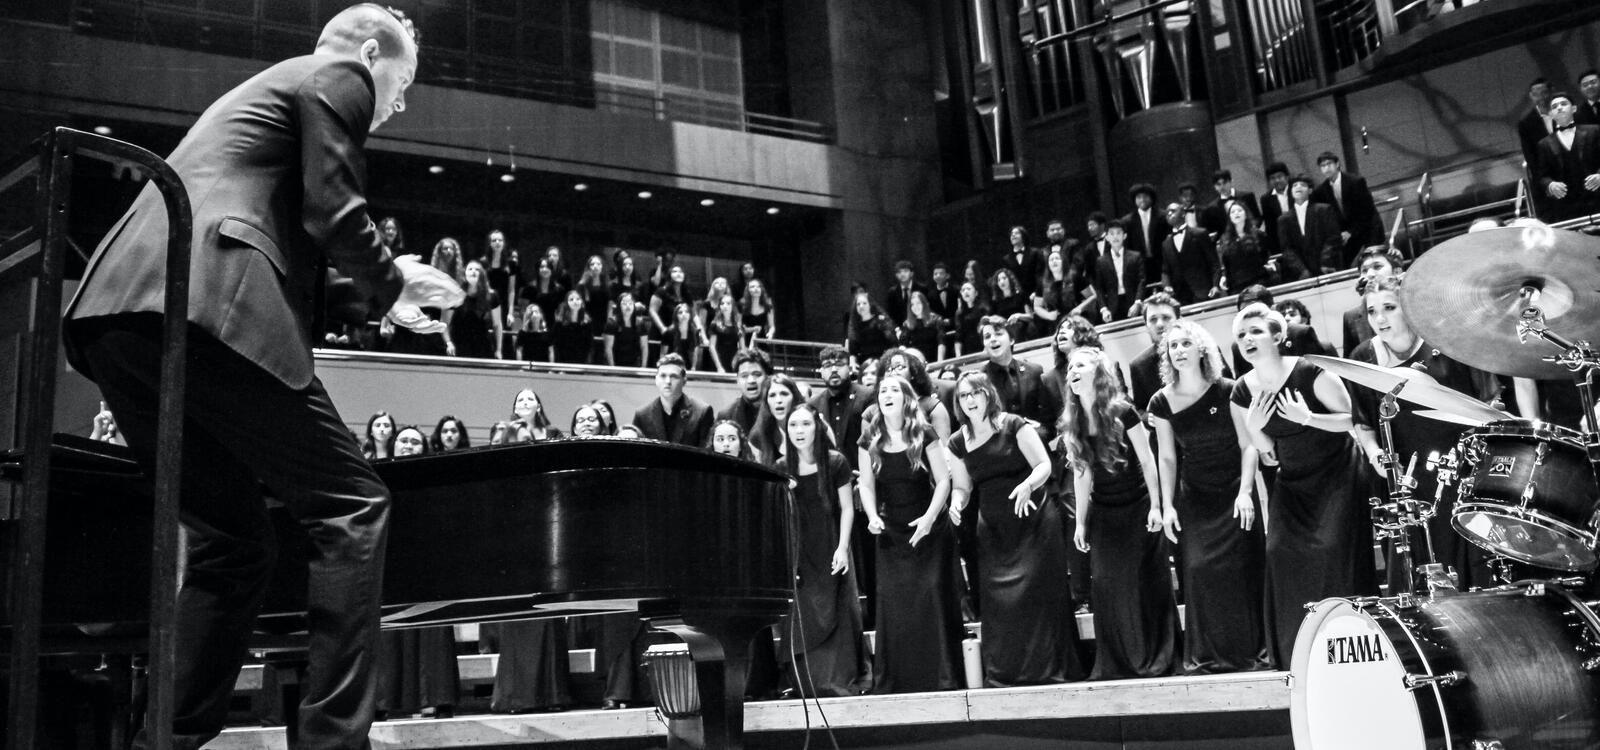 The choir, dressed in black, lean forward as they sing and follow the director who is also crouched down a bit